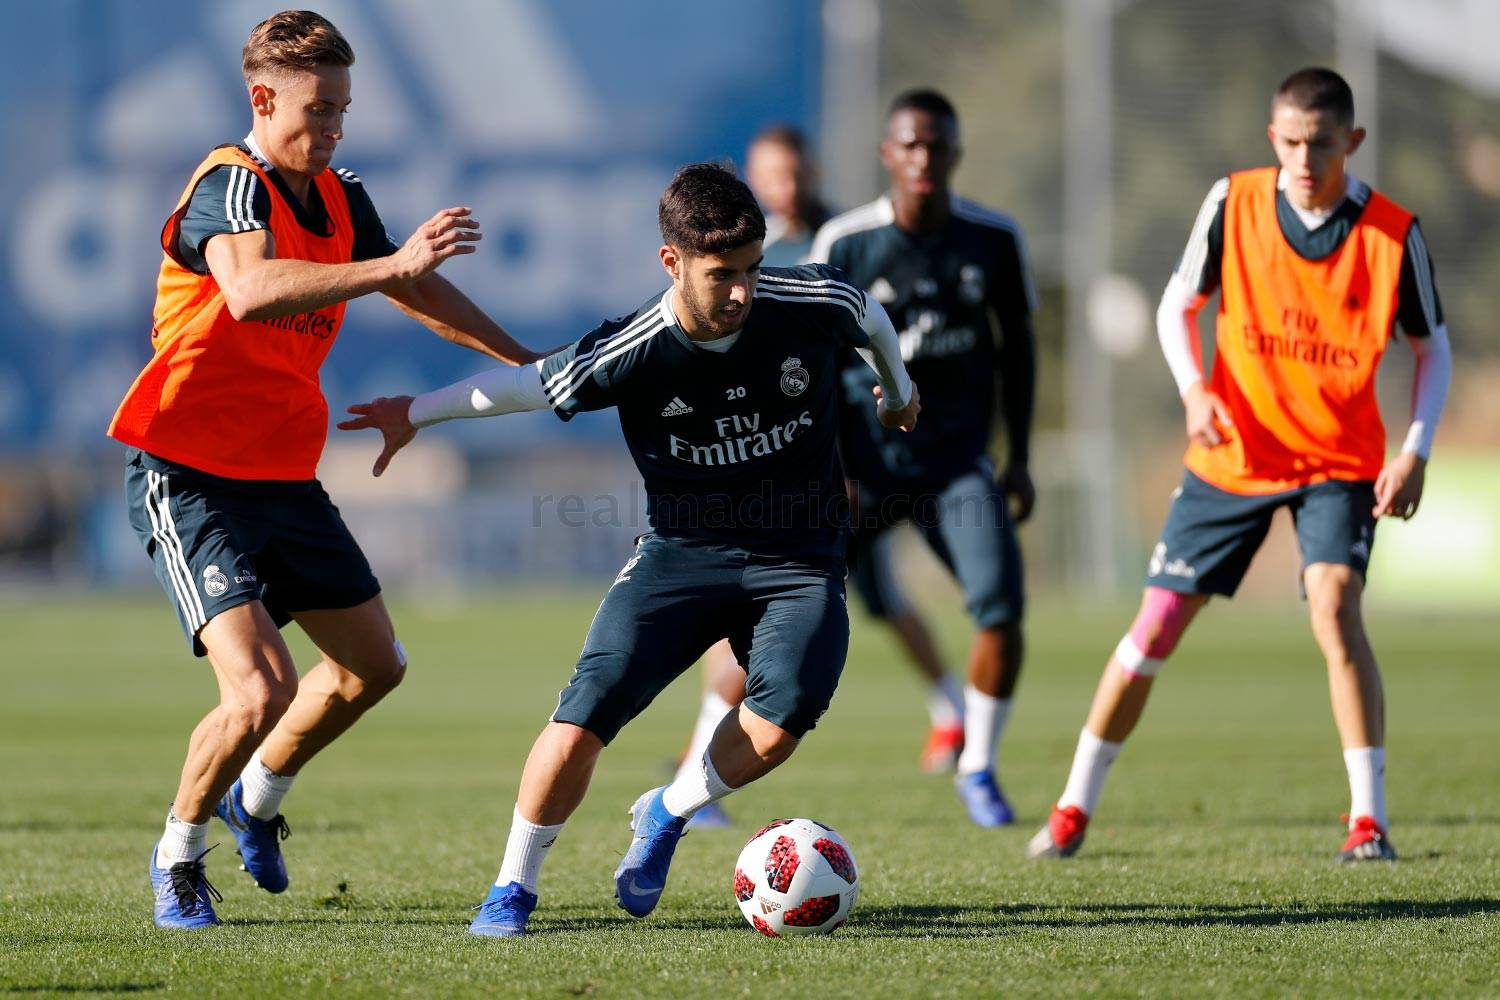 Real Madrid - Entrenamiento del Real Madrid - 04-12-2018